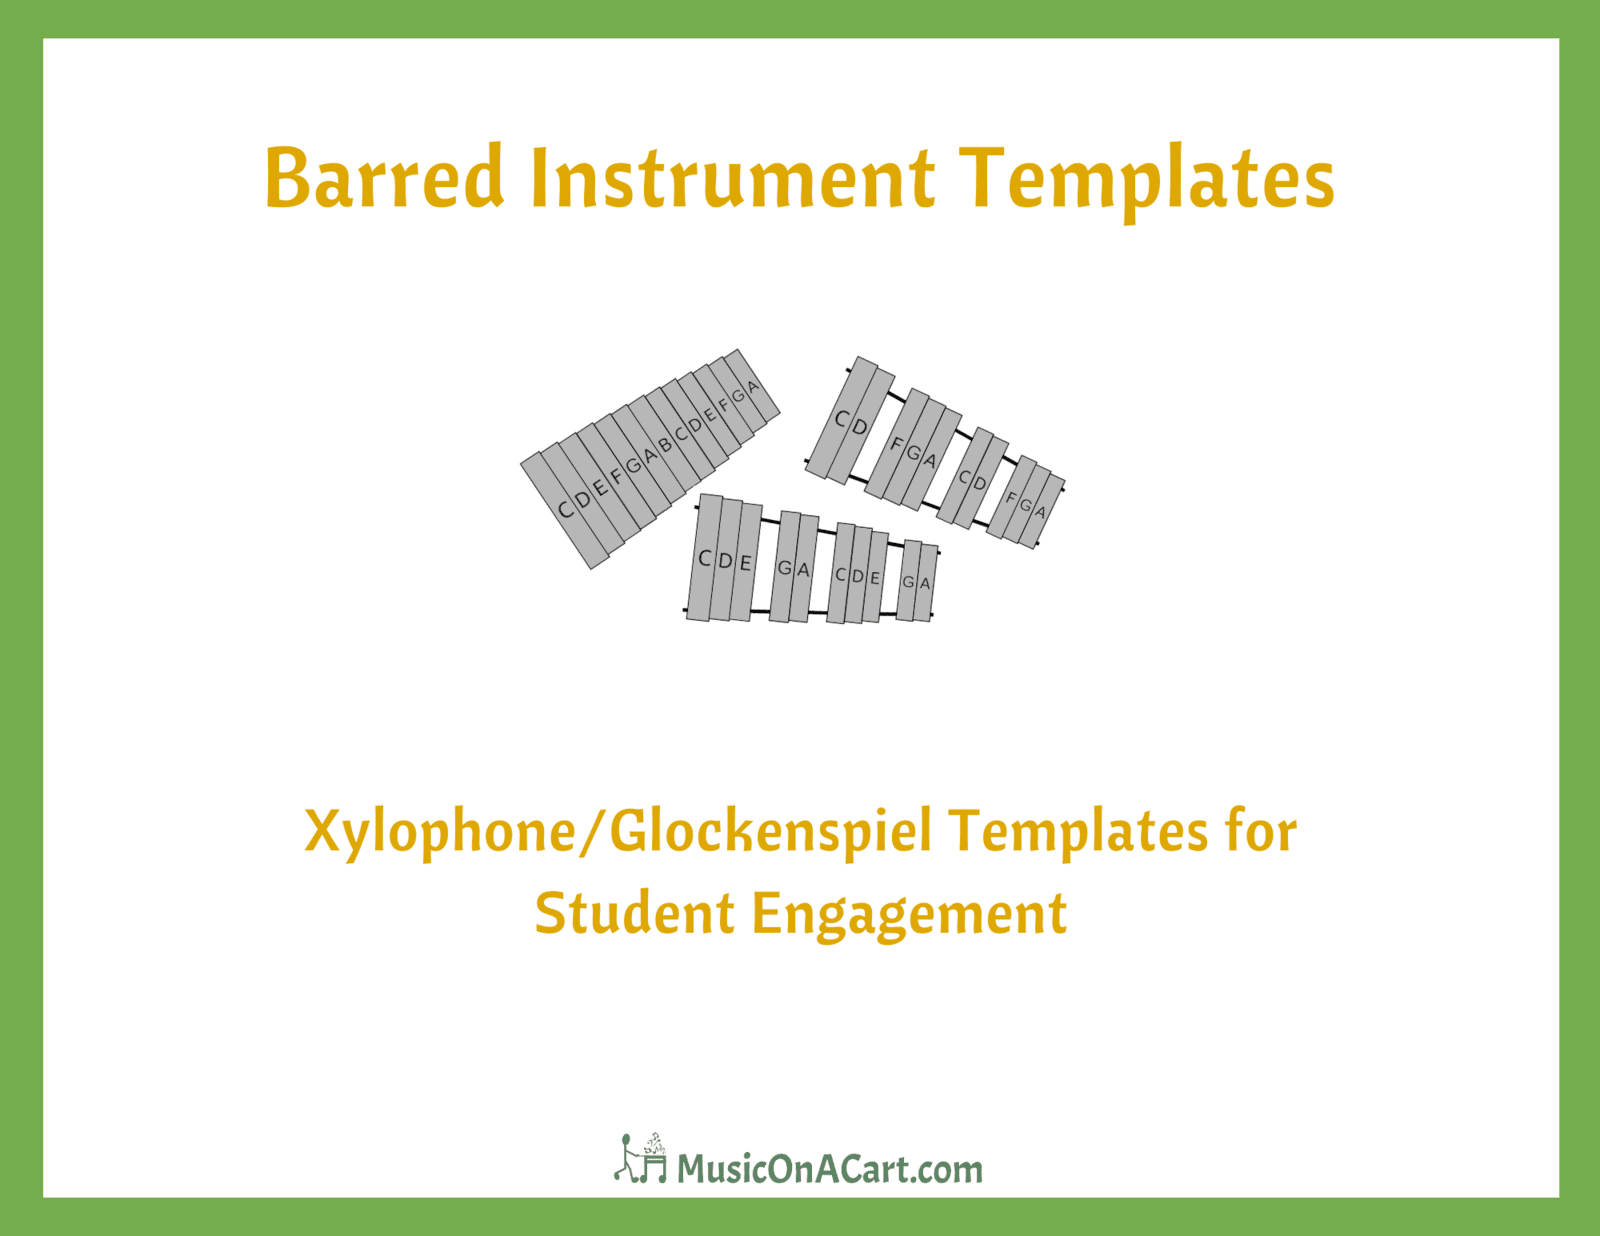 These barred instrument templates are great manipulatives for your music students to use, especially if you are teaching music from a cart. Download them for free at www.MusicOnACart.com